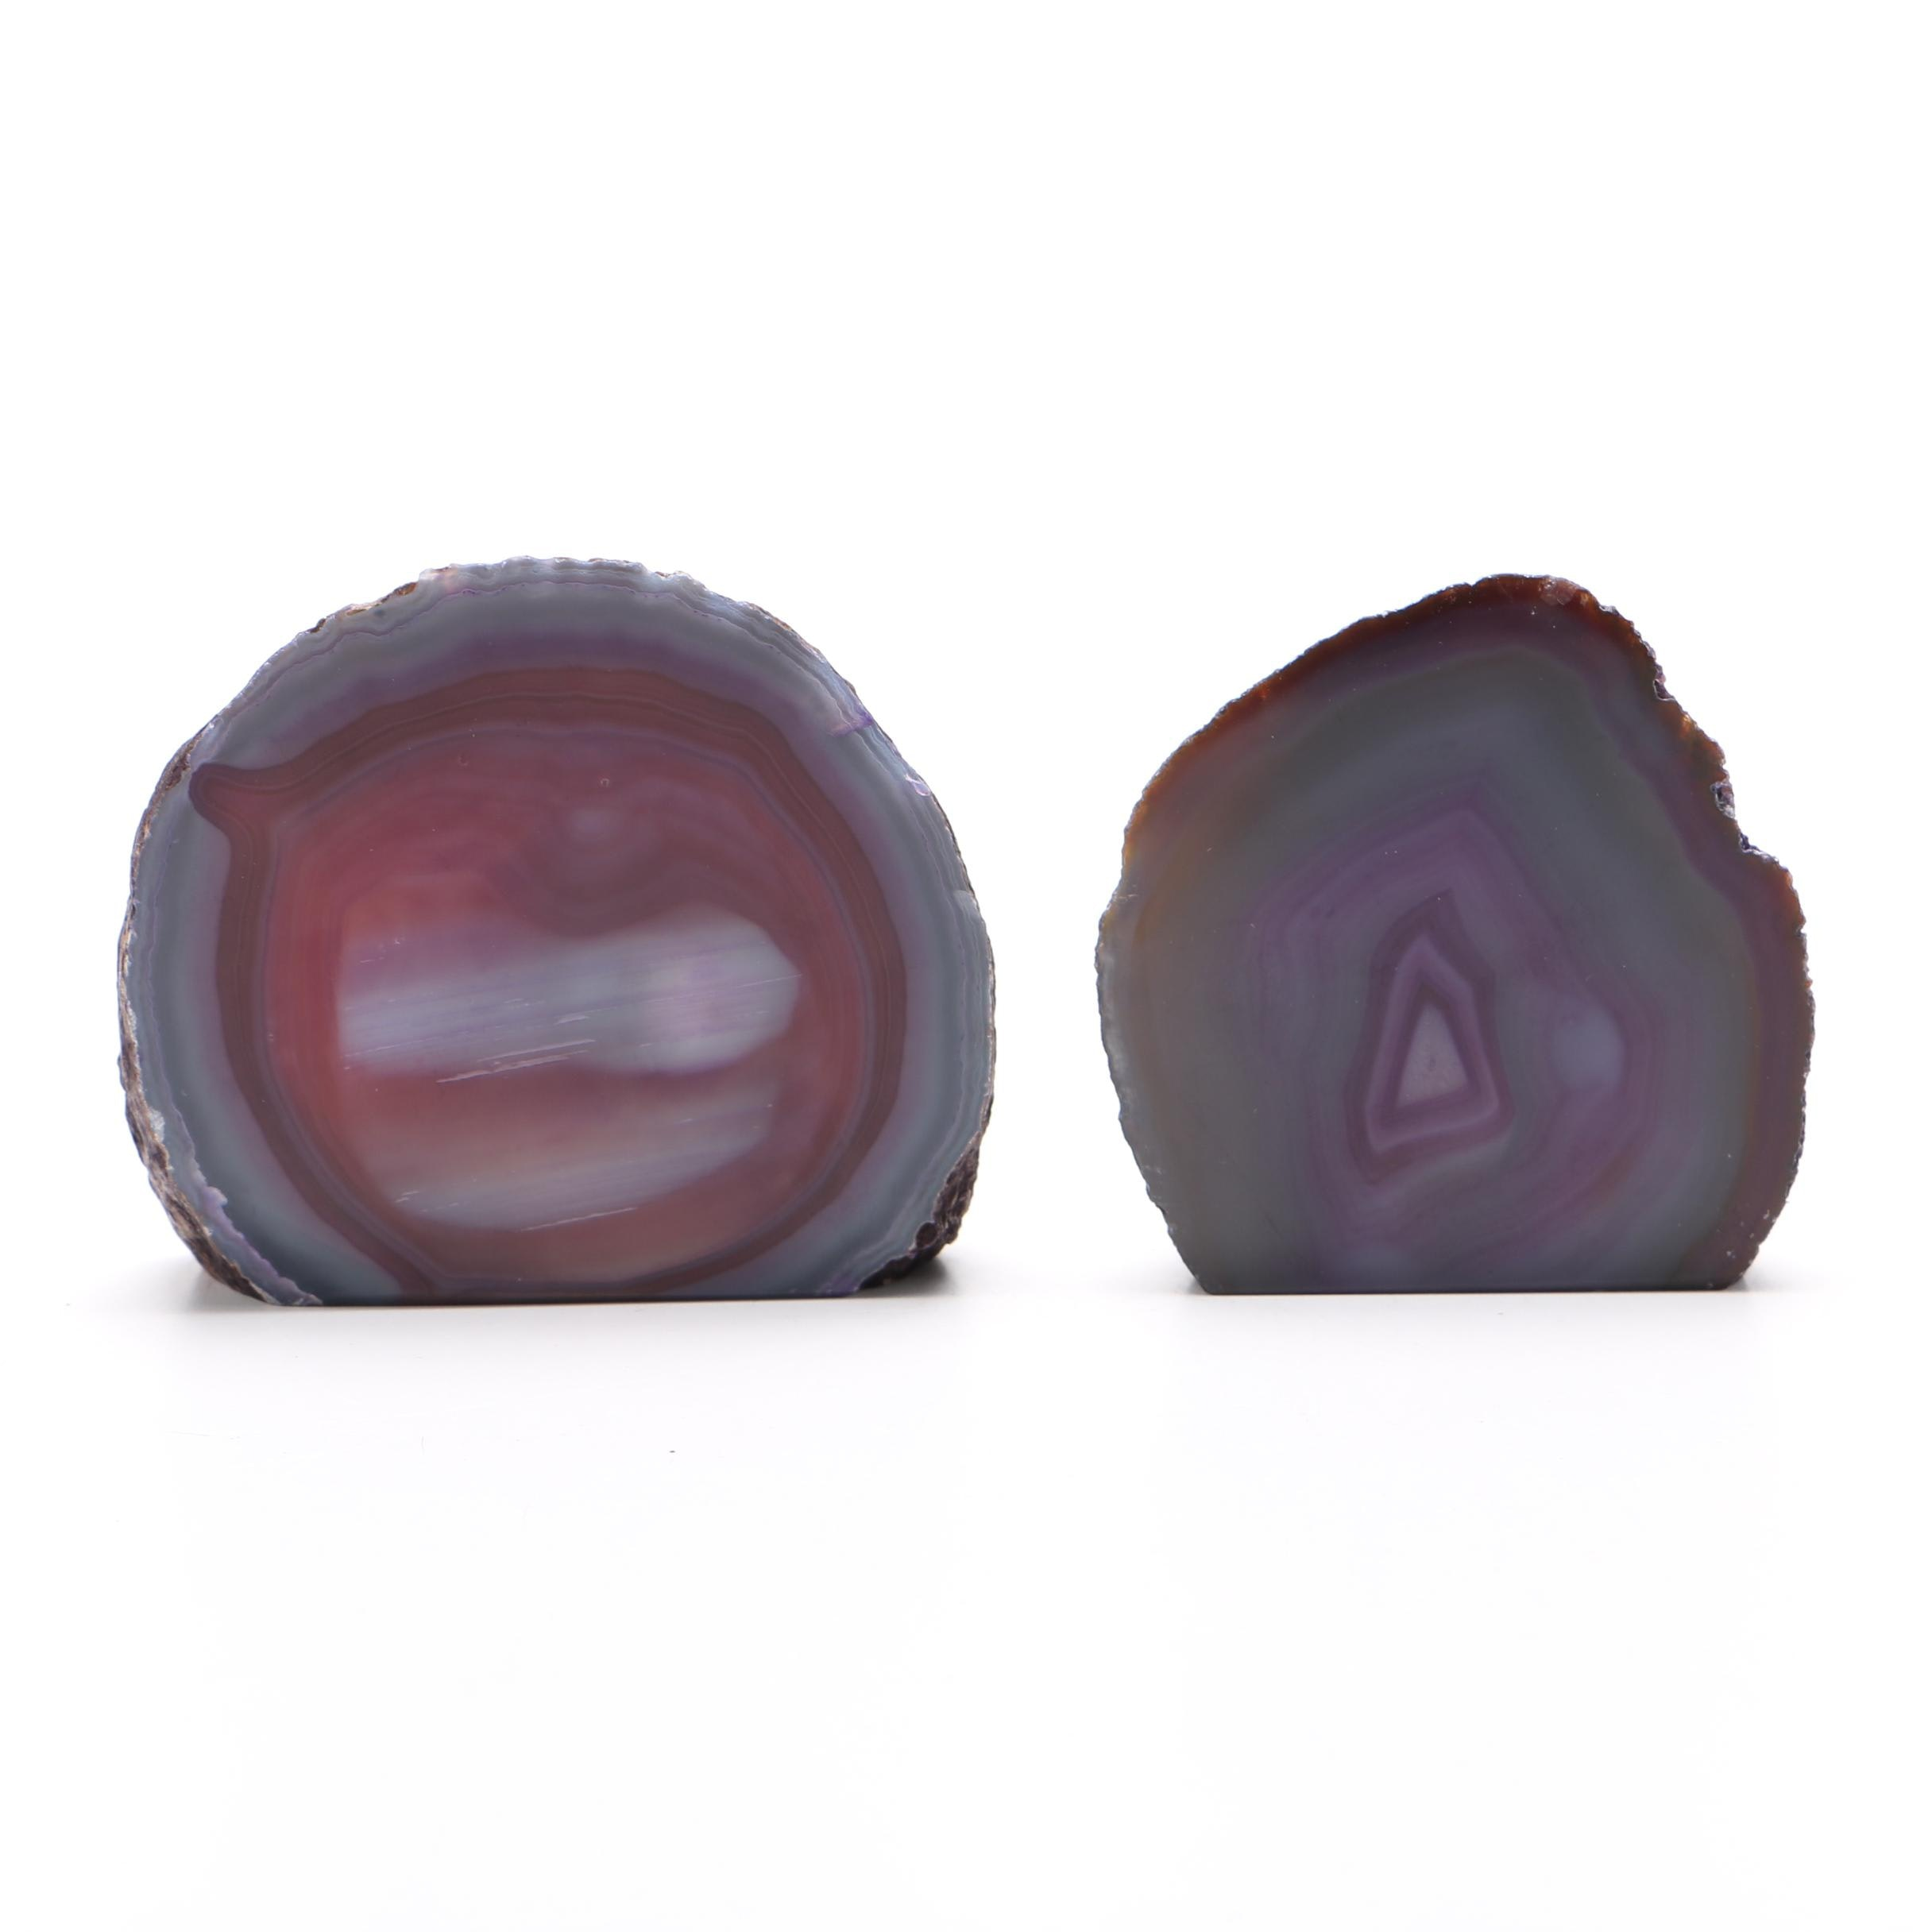 Pair of Dyed Agate Bookends